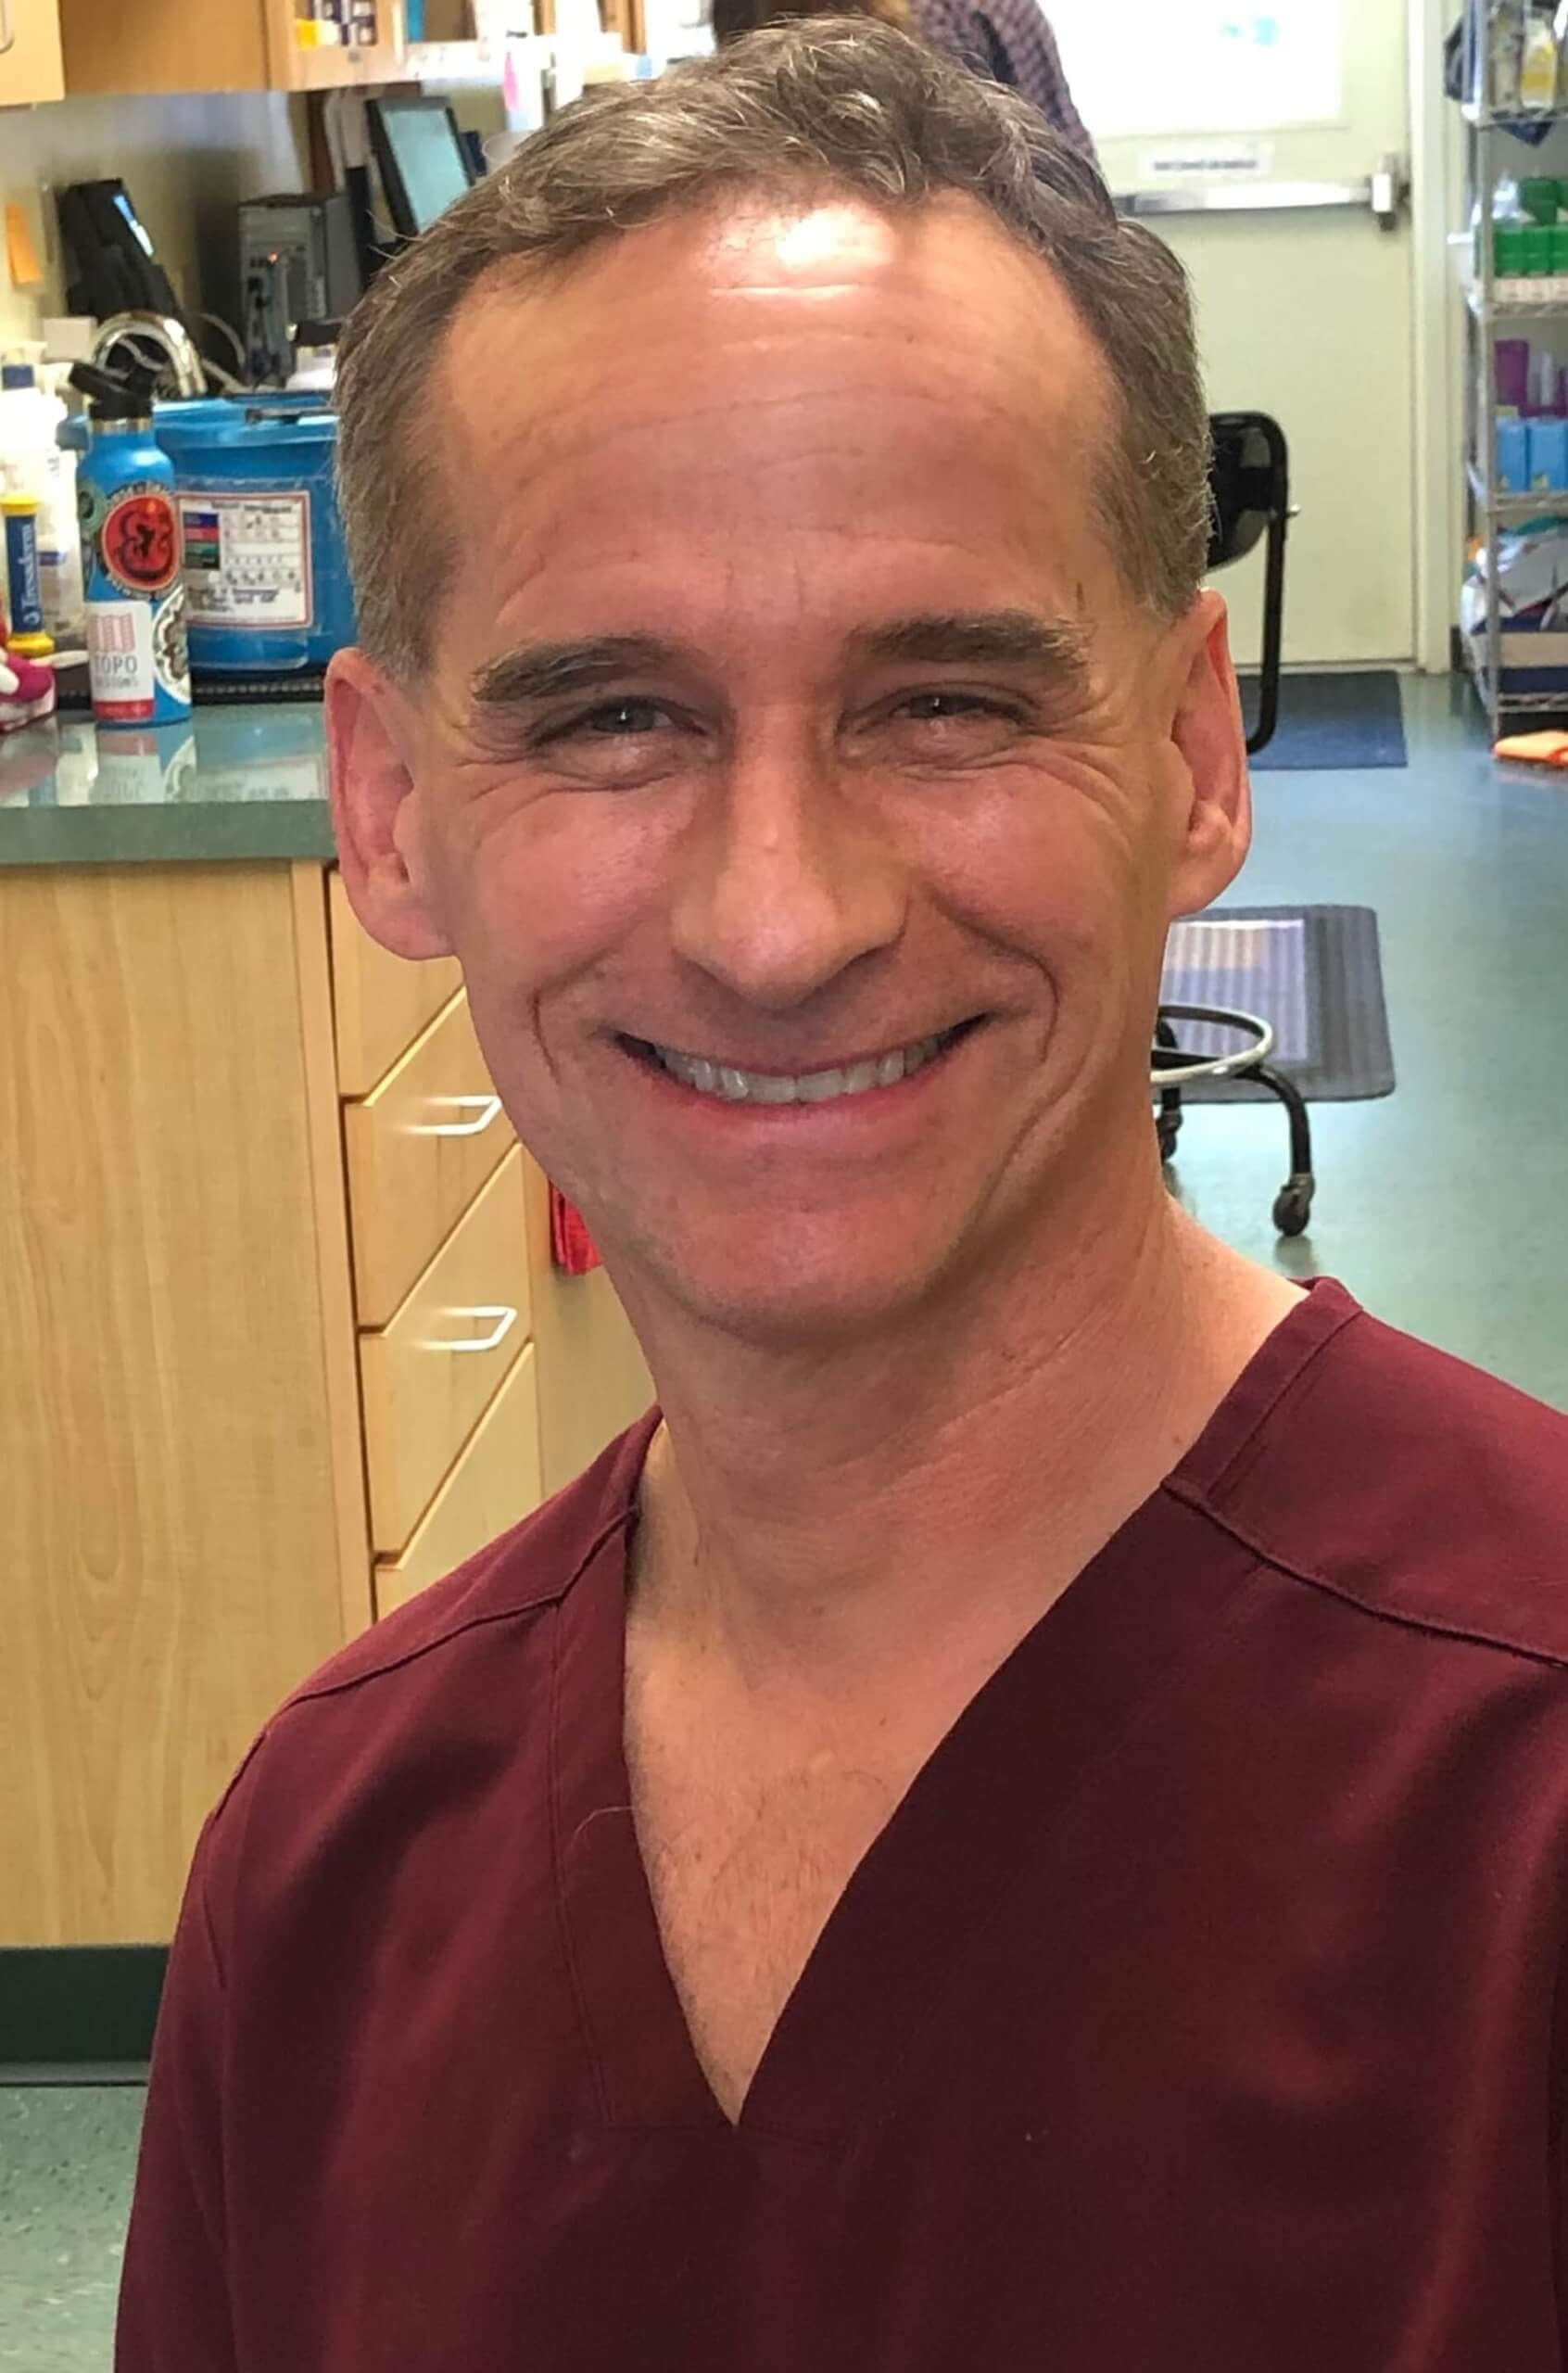 Dr. Eric Twitchell